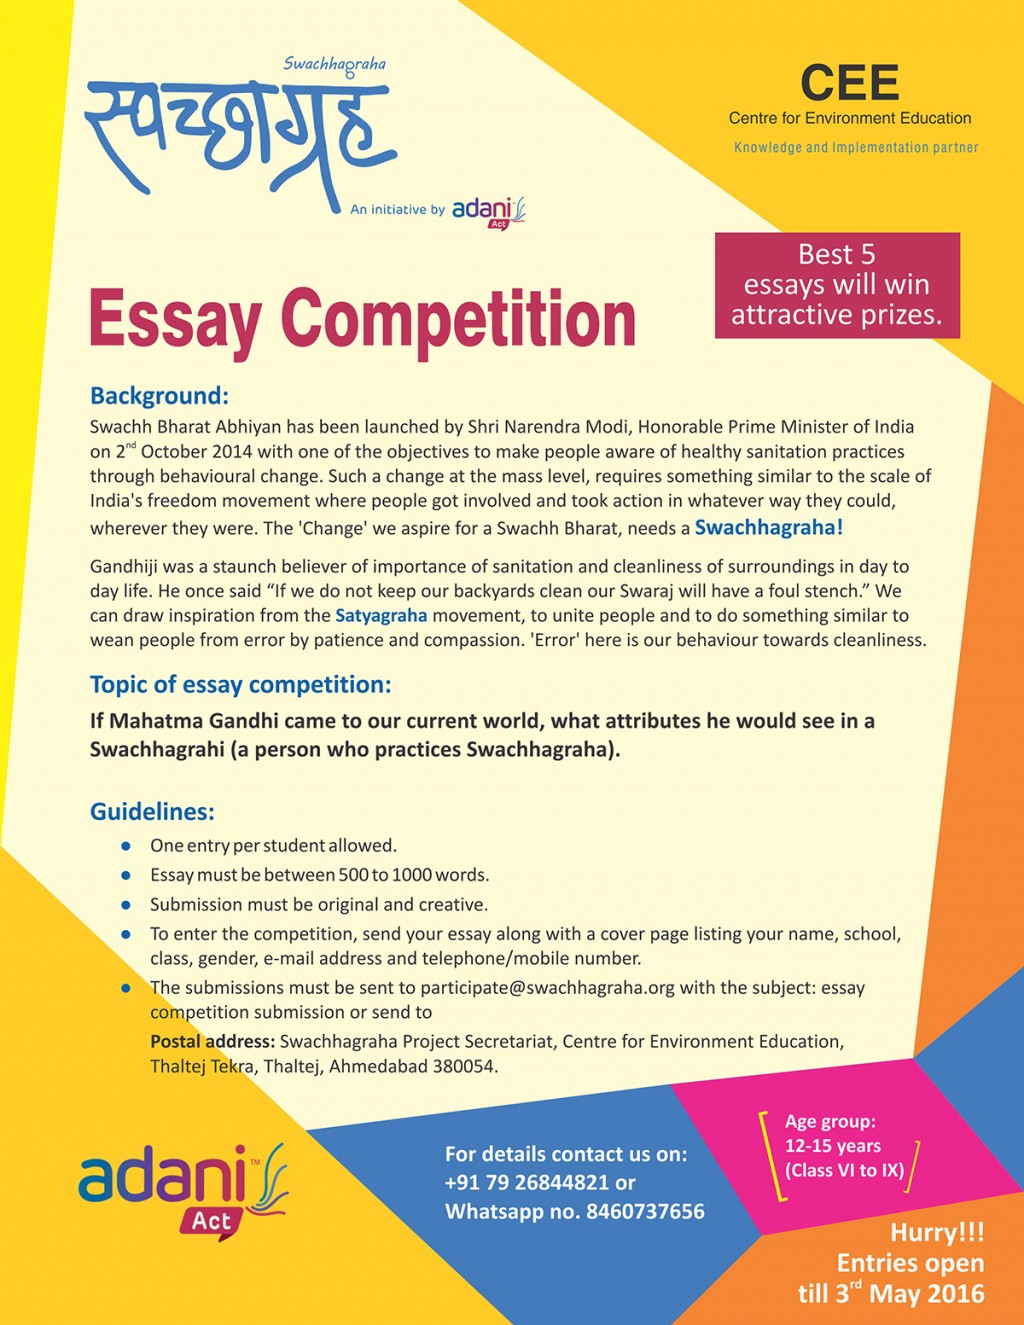 011 20180129171946essay20competition Essay About Cleanliness In School Phenomenal Writing On Premises Large